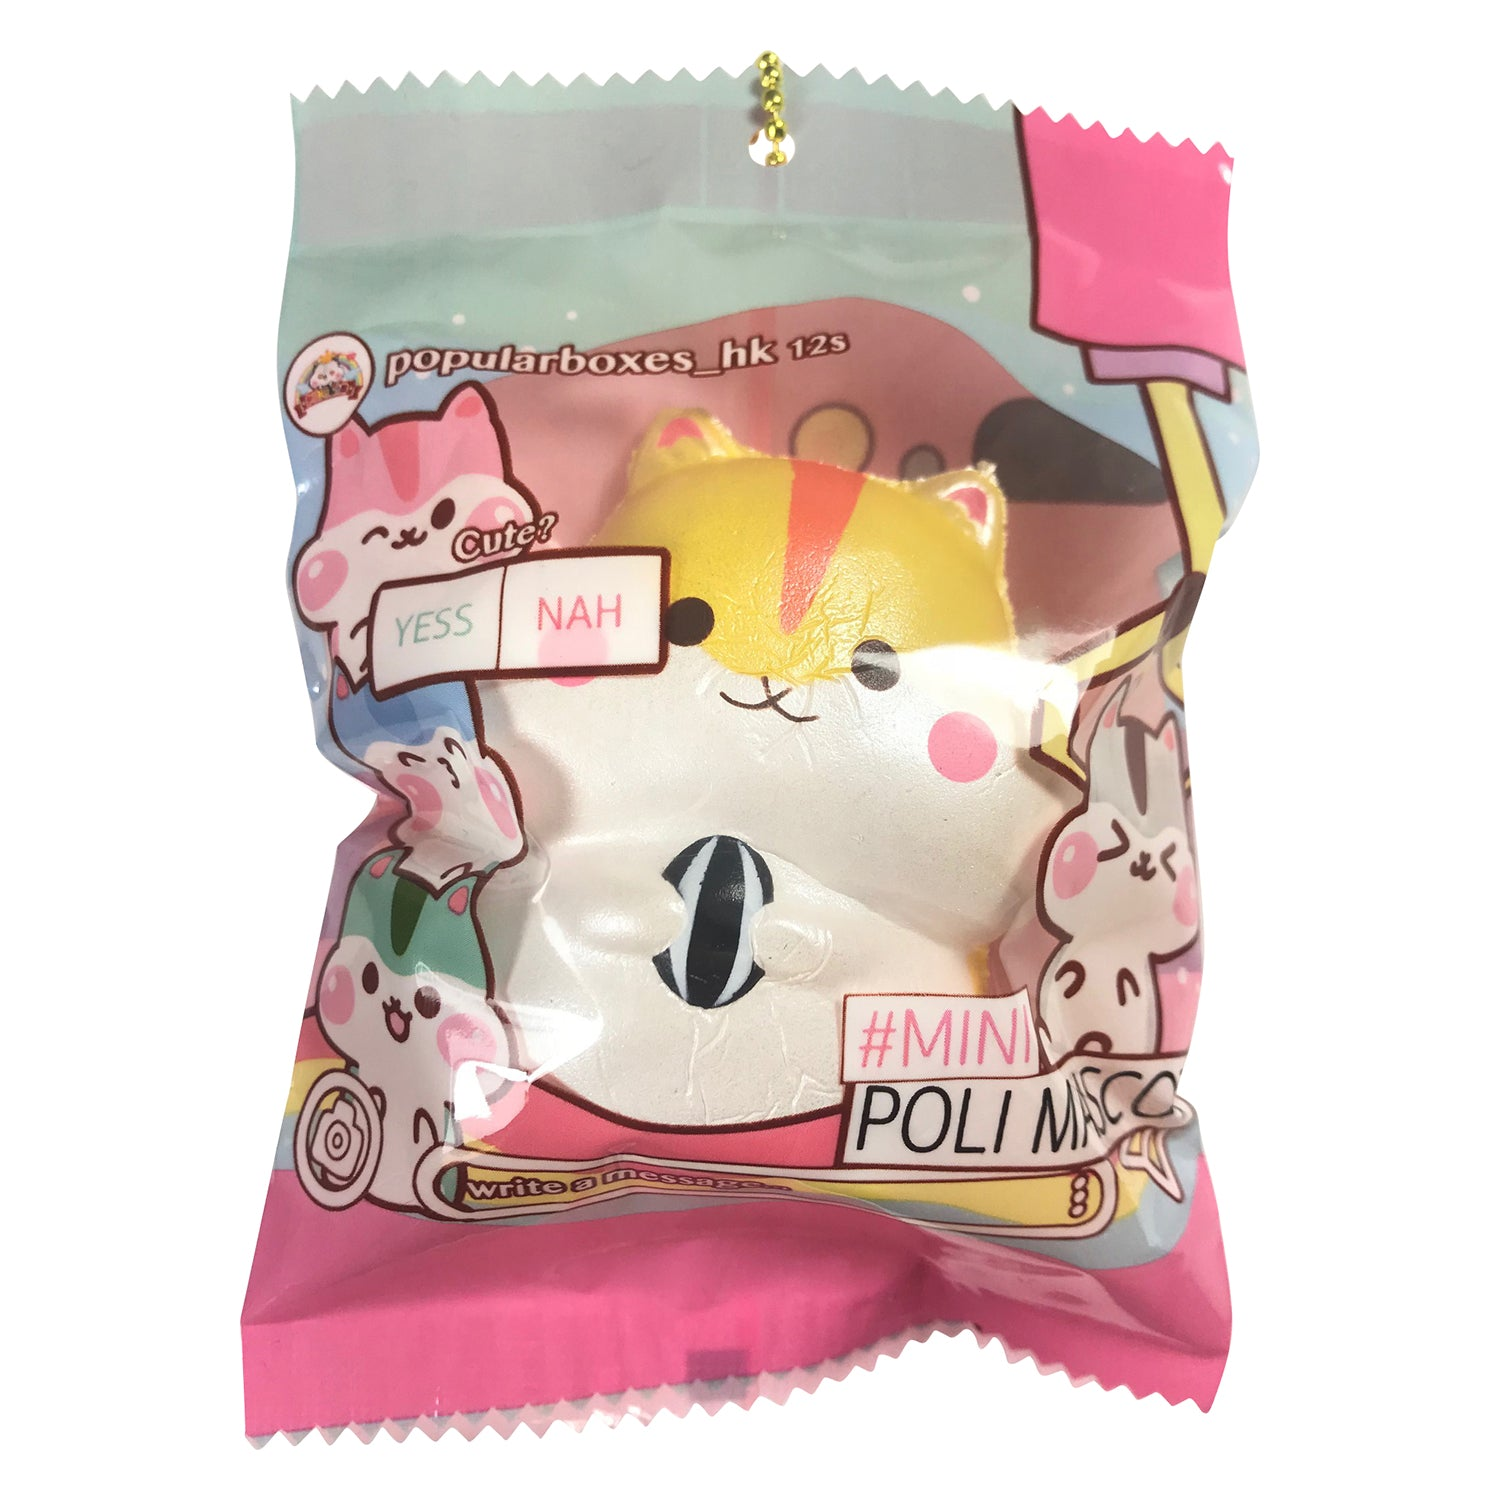 * New Colors * MINI SCENTED Poli Mascot! Cute, cute, CUTE!